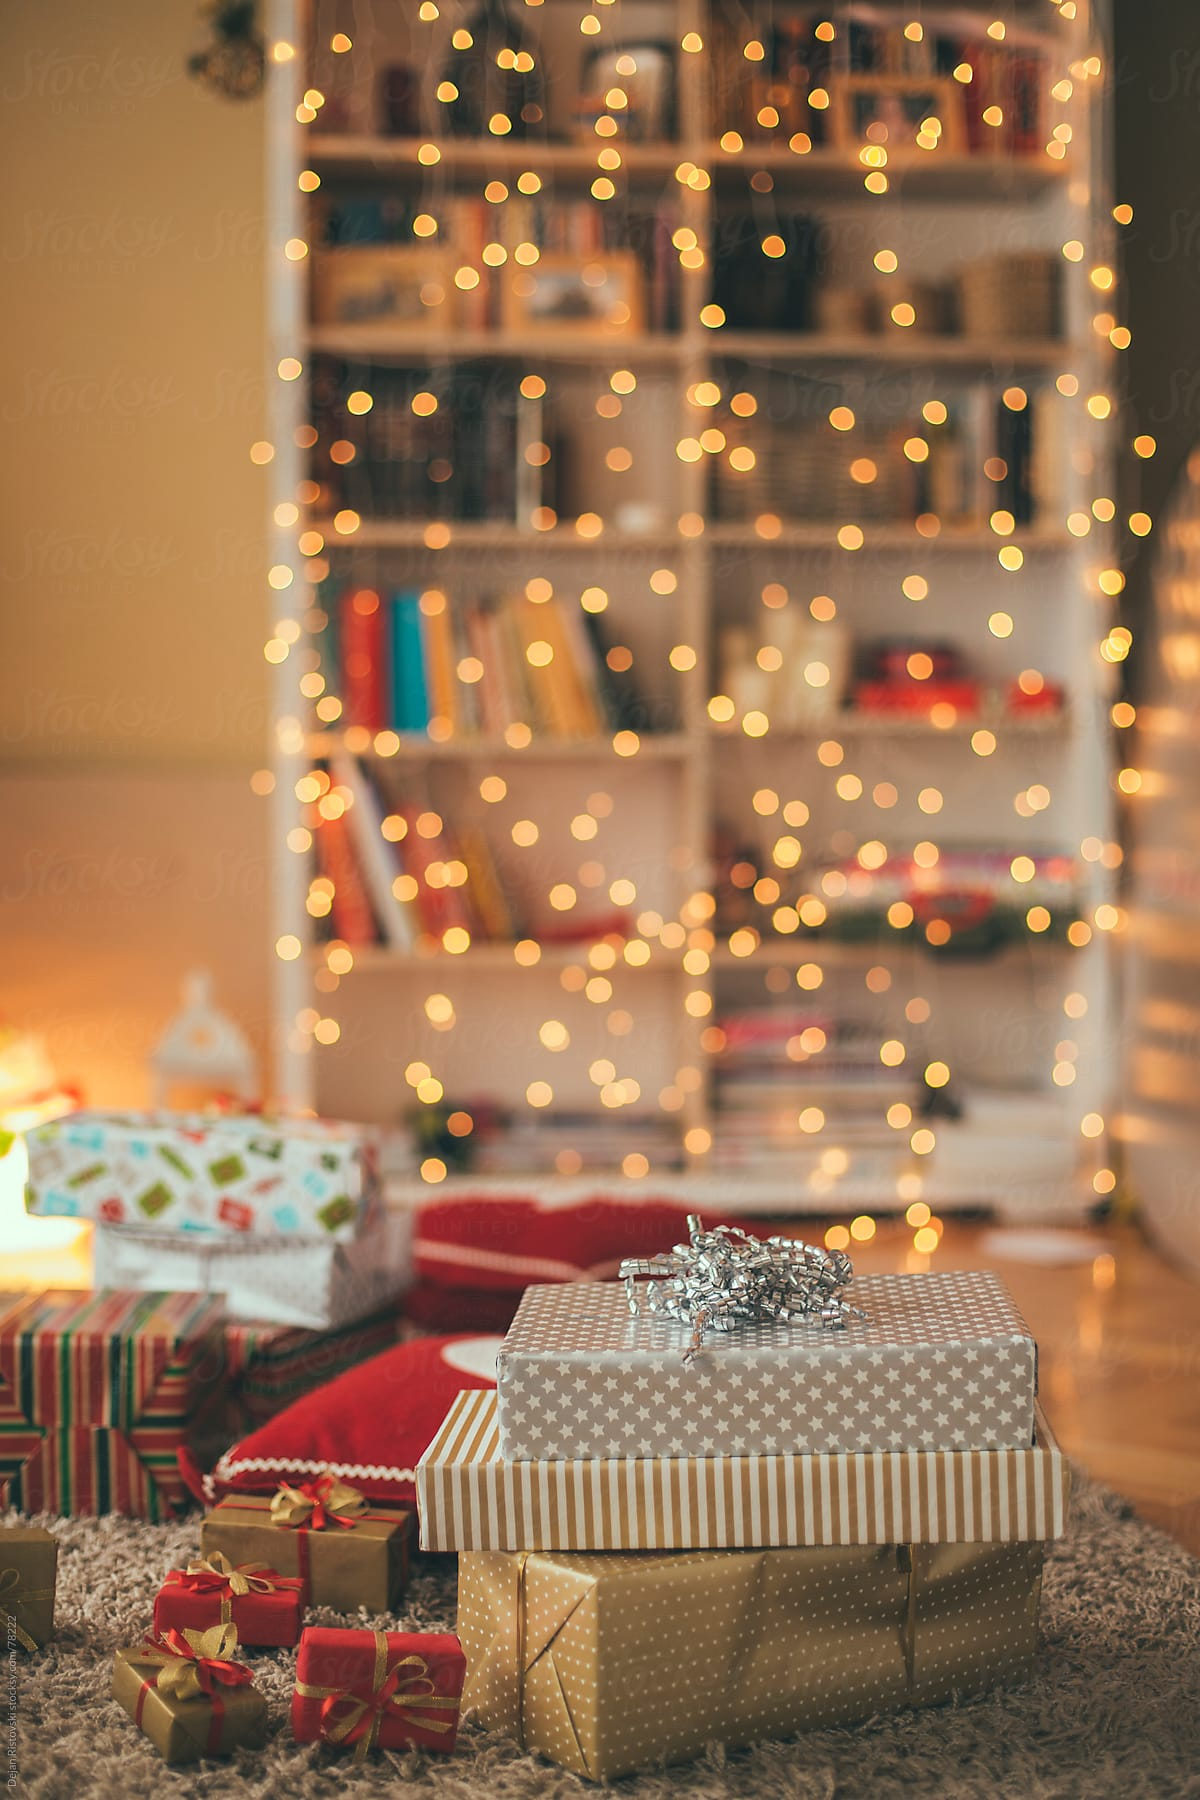 Living Room Decorated With Christmas Lights And Presents Stocksy